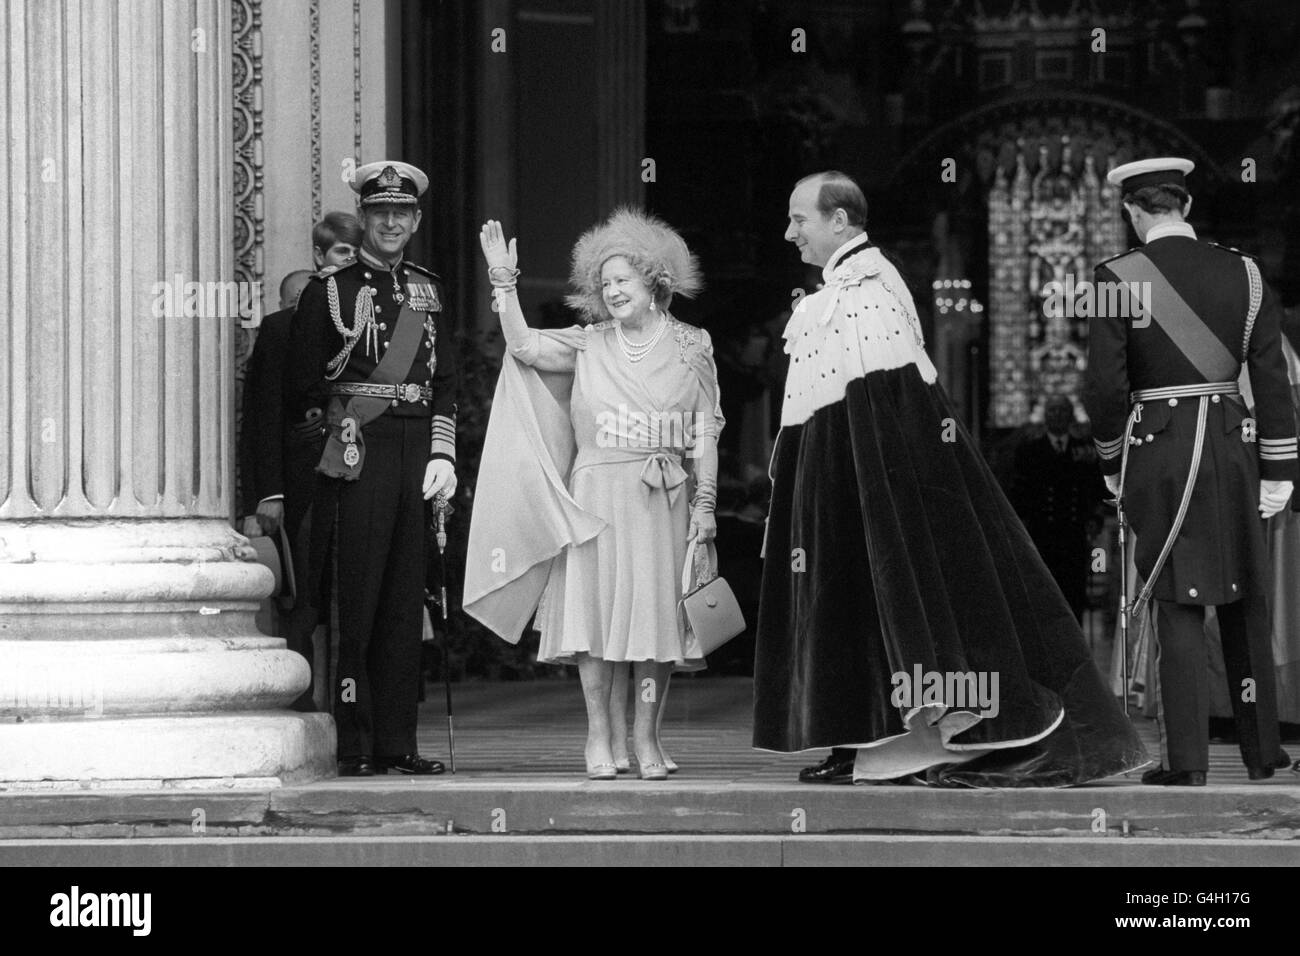 Royalty - Queen Mother's 80th Birthday Celebrations - St Paul's Cathedral, London - Stock Image